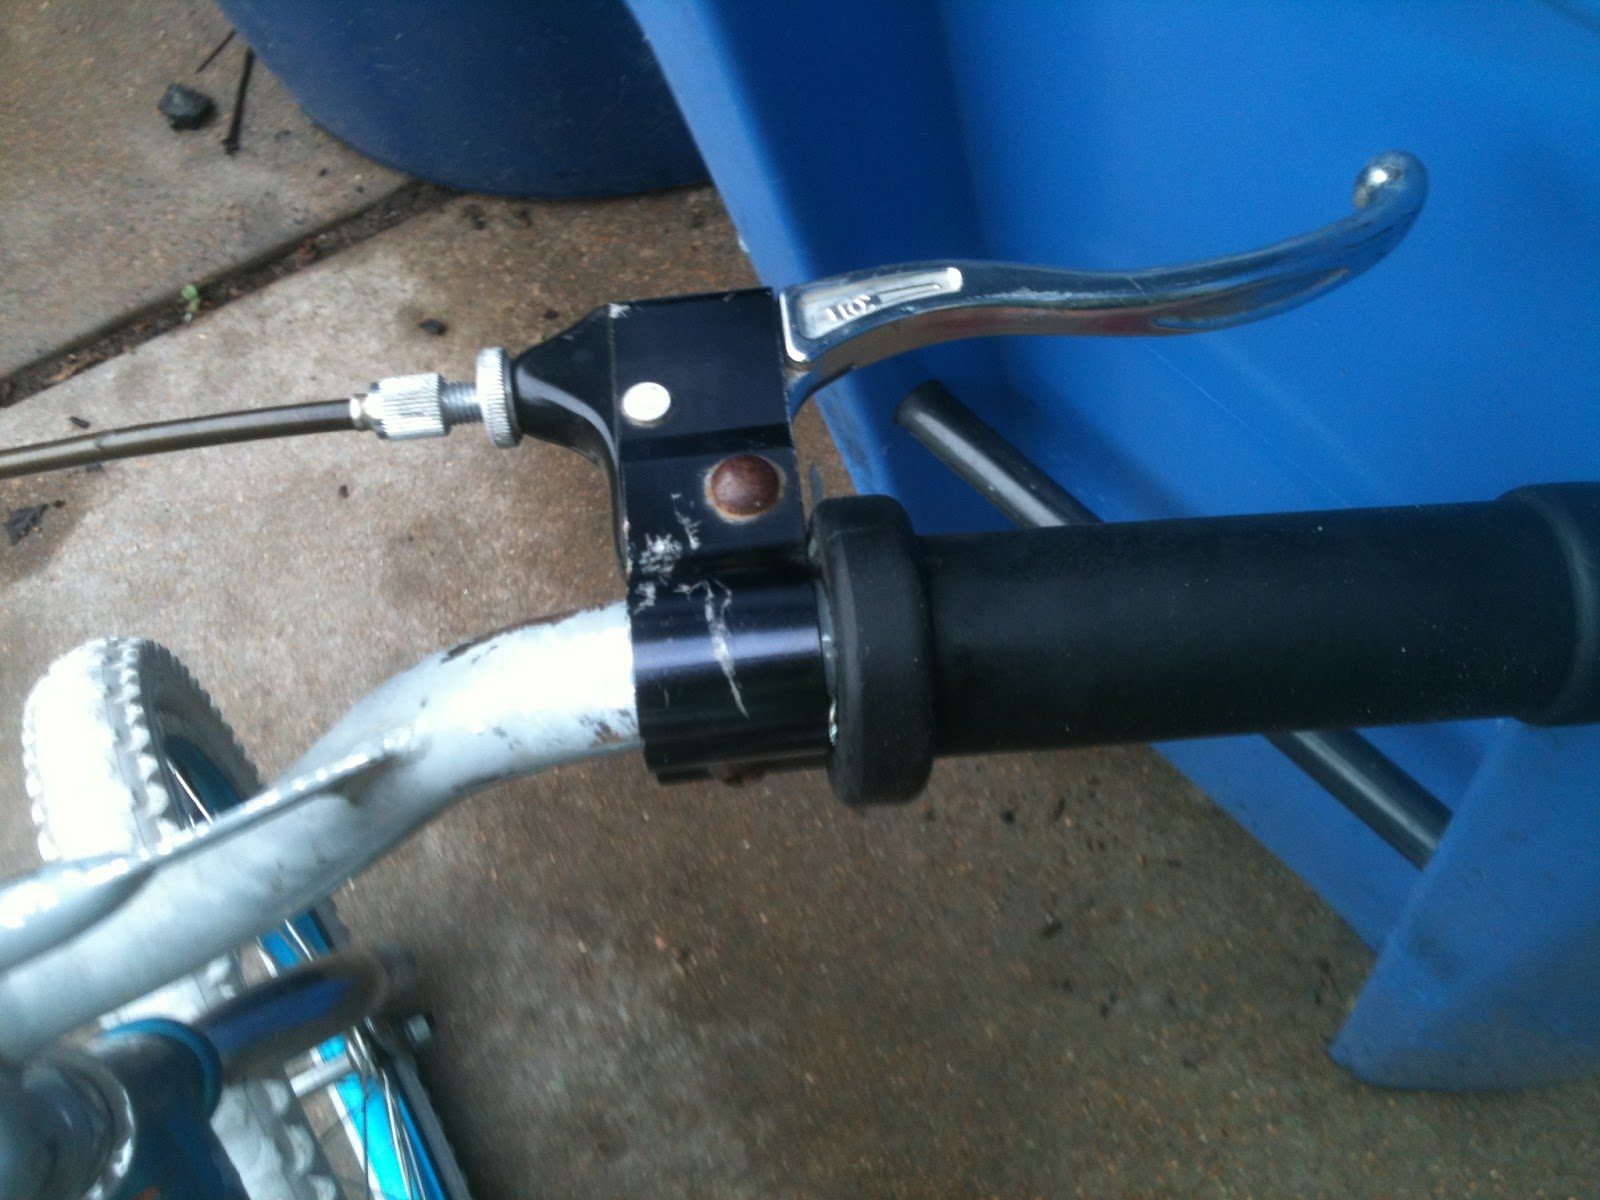 I mounted a 25 cc weed eater motor using a piece of angle iron and a piece of carpet metal. The motor is rigidly mounted to bike frame with no turn buckles ...